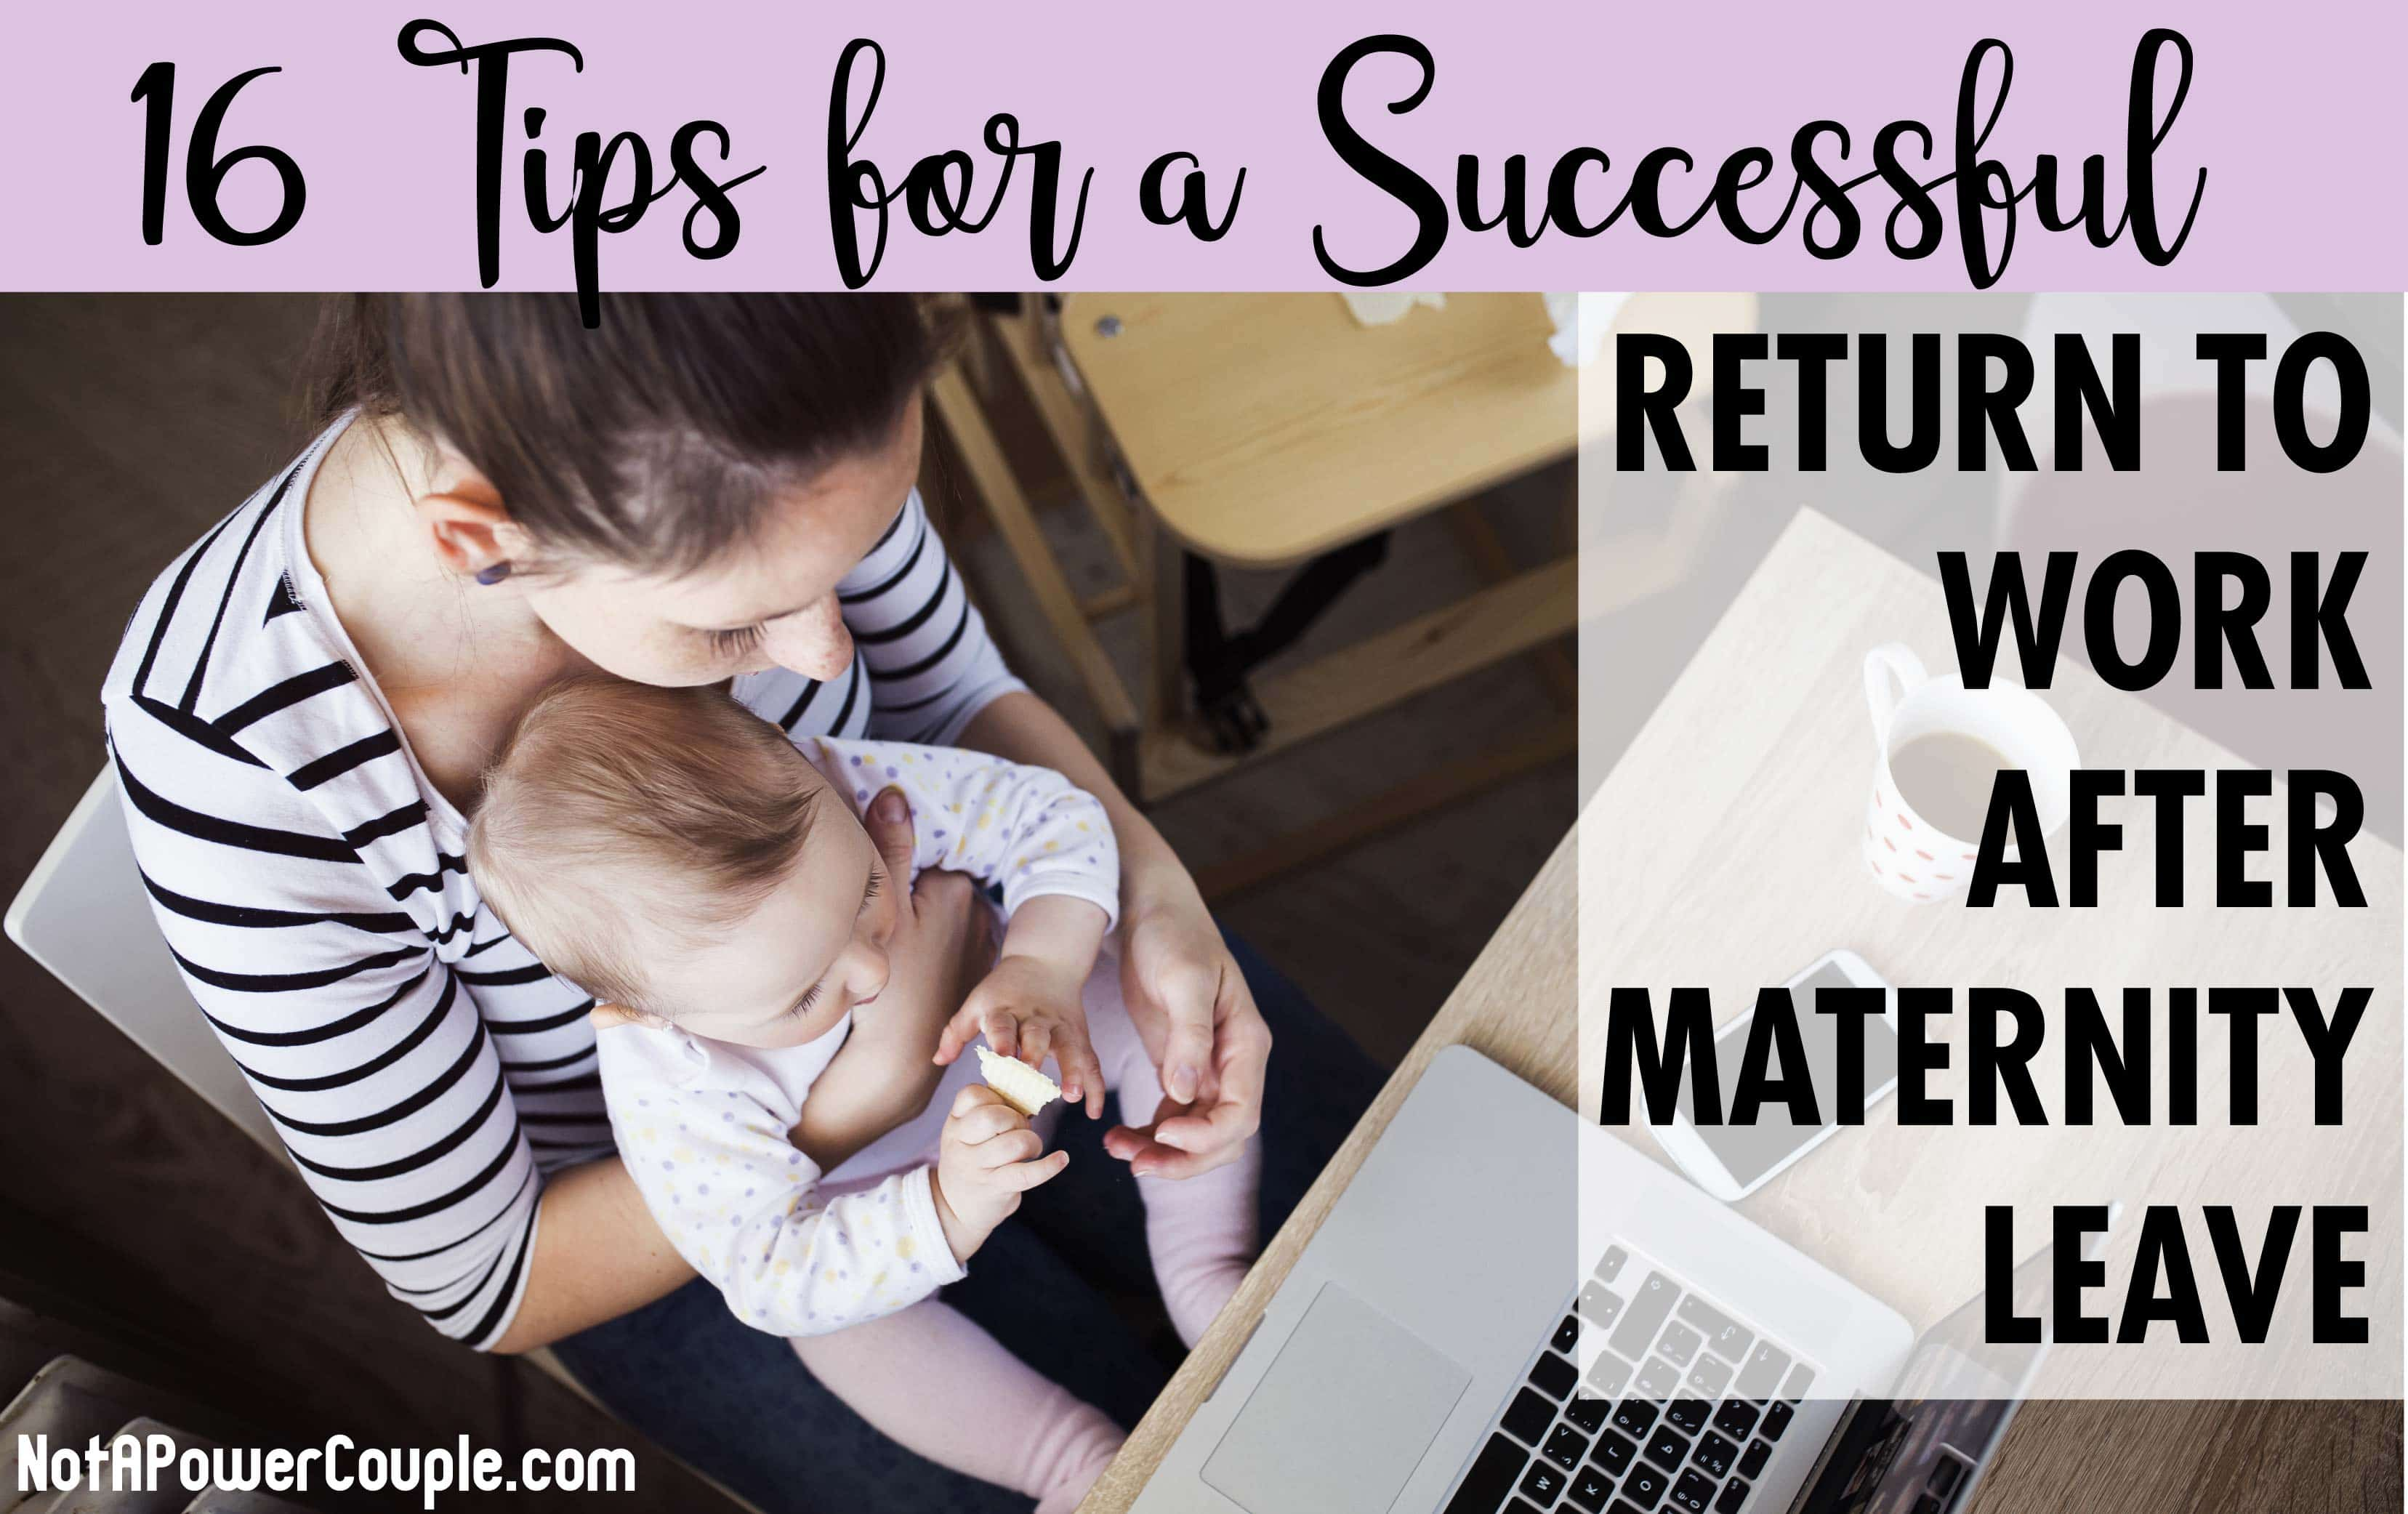 16 Tips for a Successful Return to Work After Maternity Leave